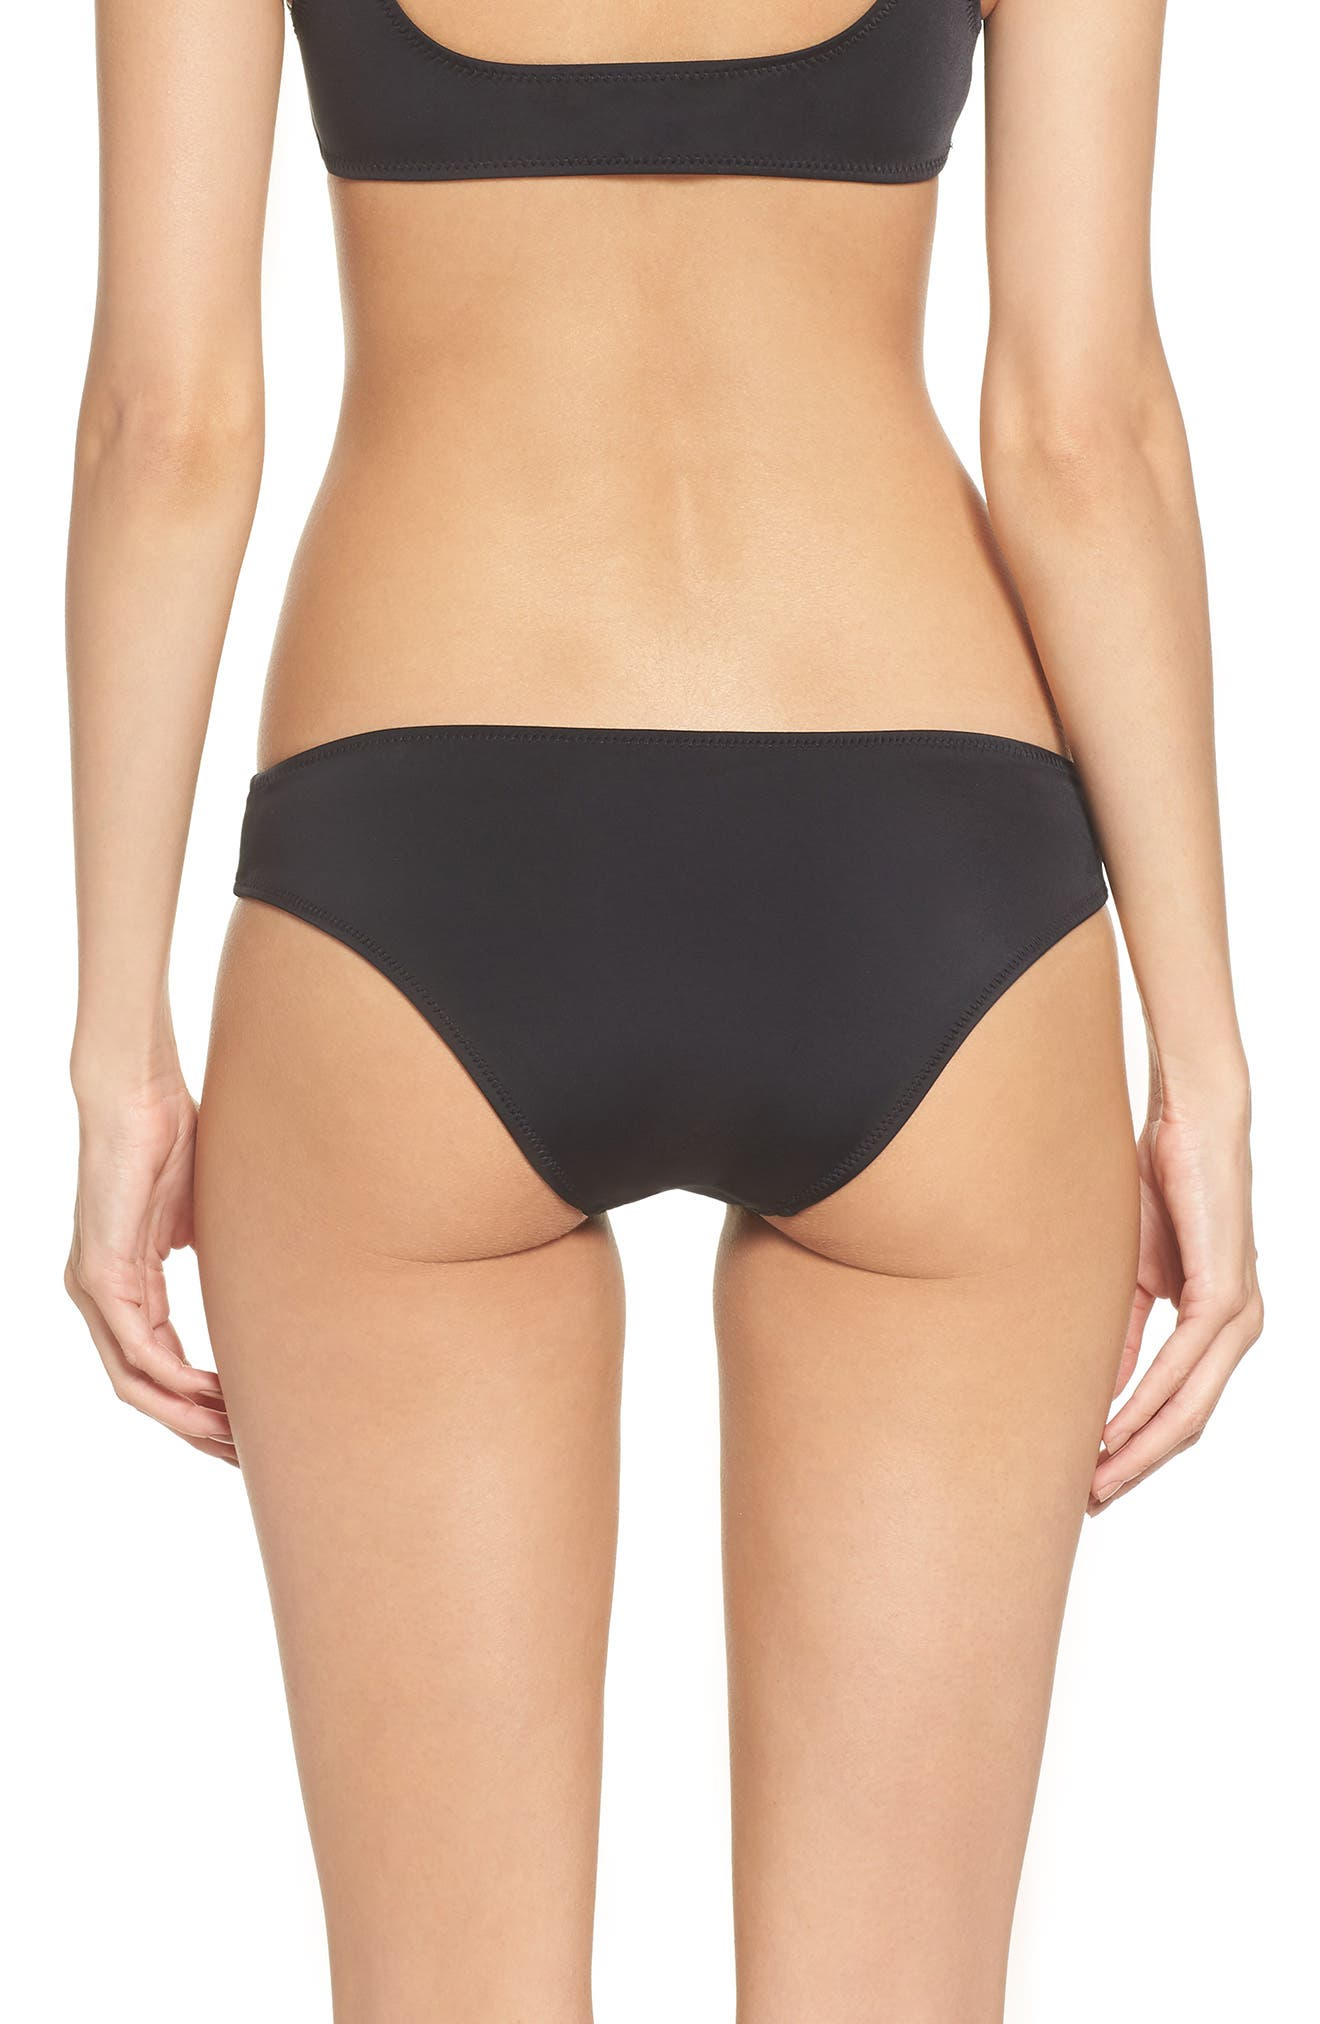 Elle Bikini Bottoms,                             Alternate thumbnail 2, color,                             BLACK